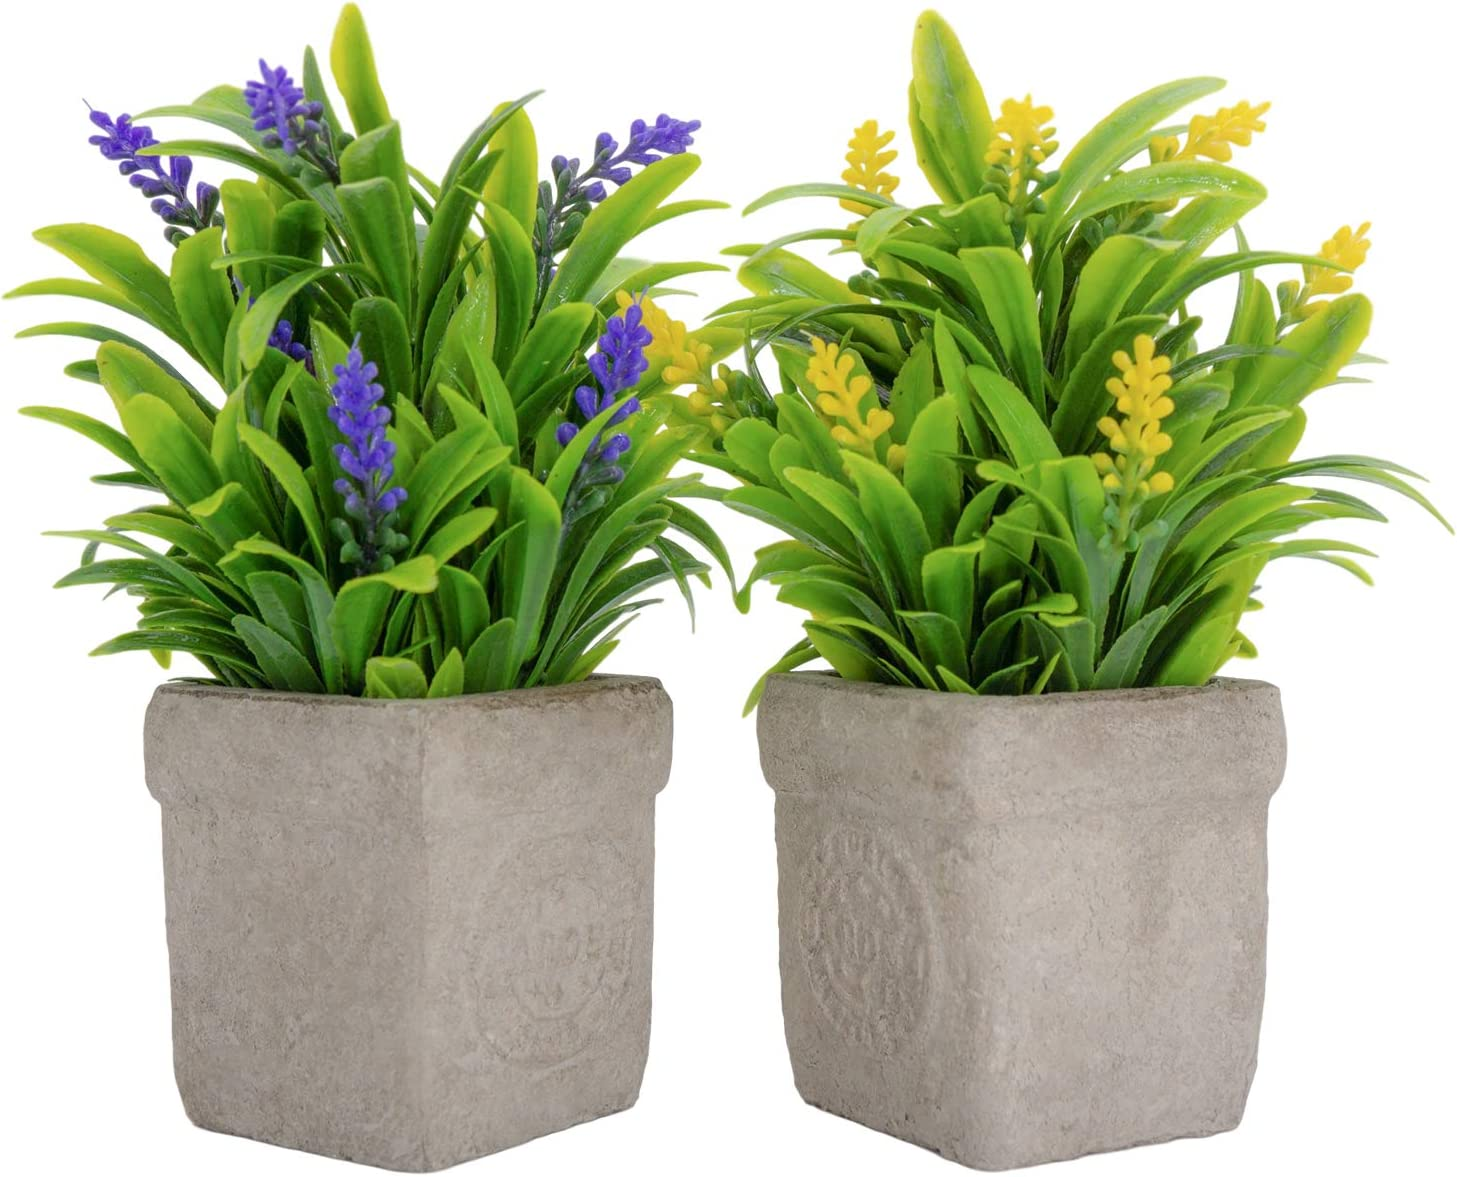 2 Pack Artificial Plants in Pots for Home Decor Indoor Aesthetic, Fall Décor Faux Fake Lavender Flowers for Desk and Shelf in Bathroom / Bedroom / Living Room/ Farmhouse